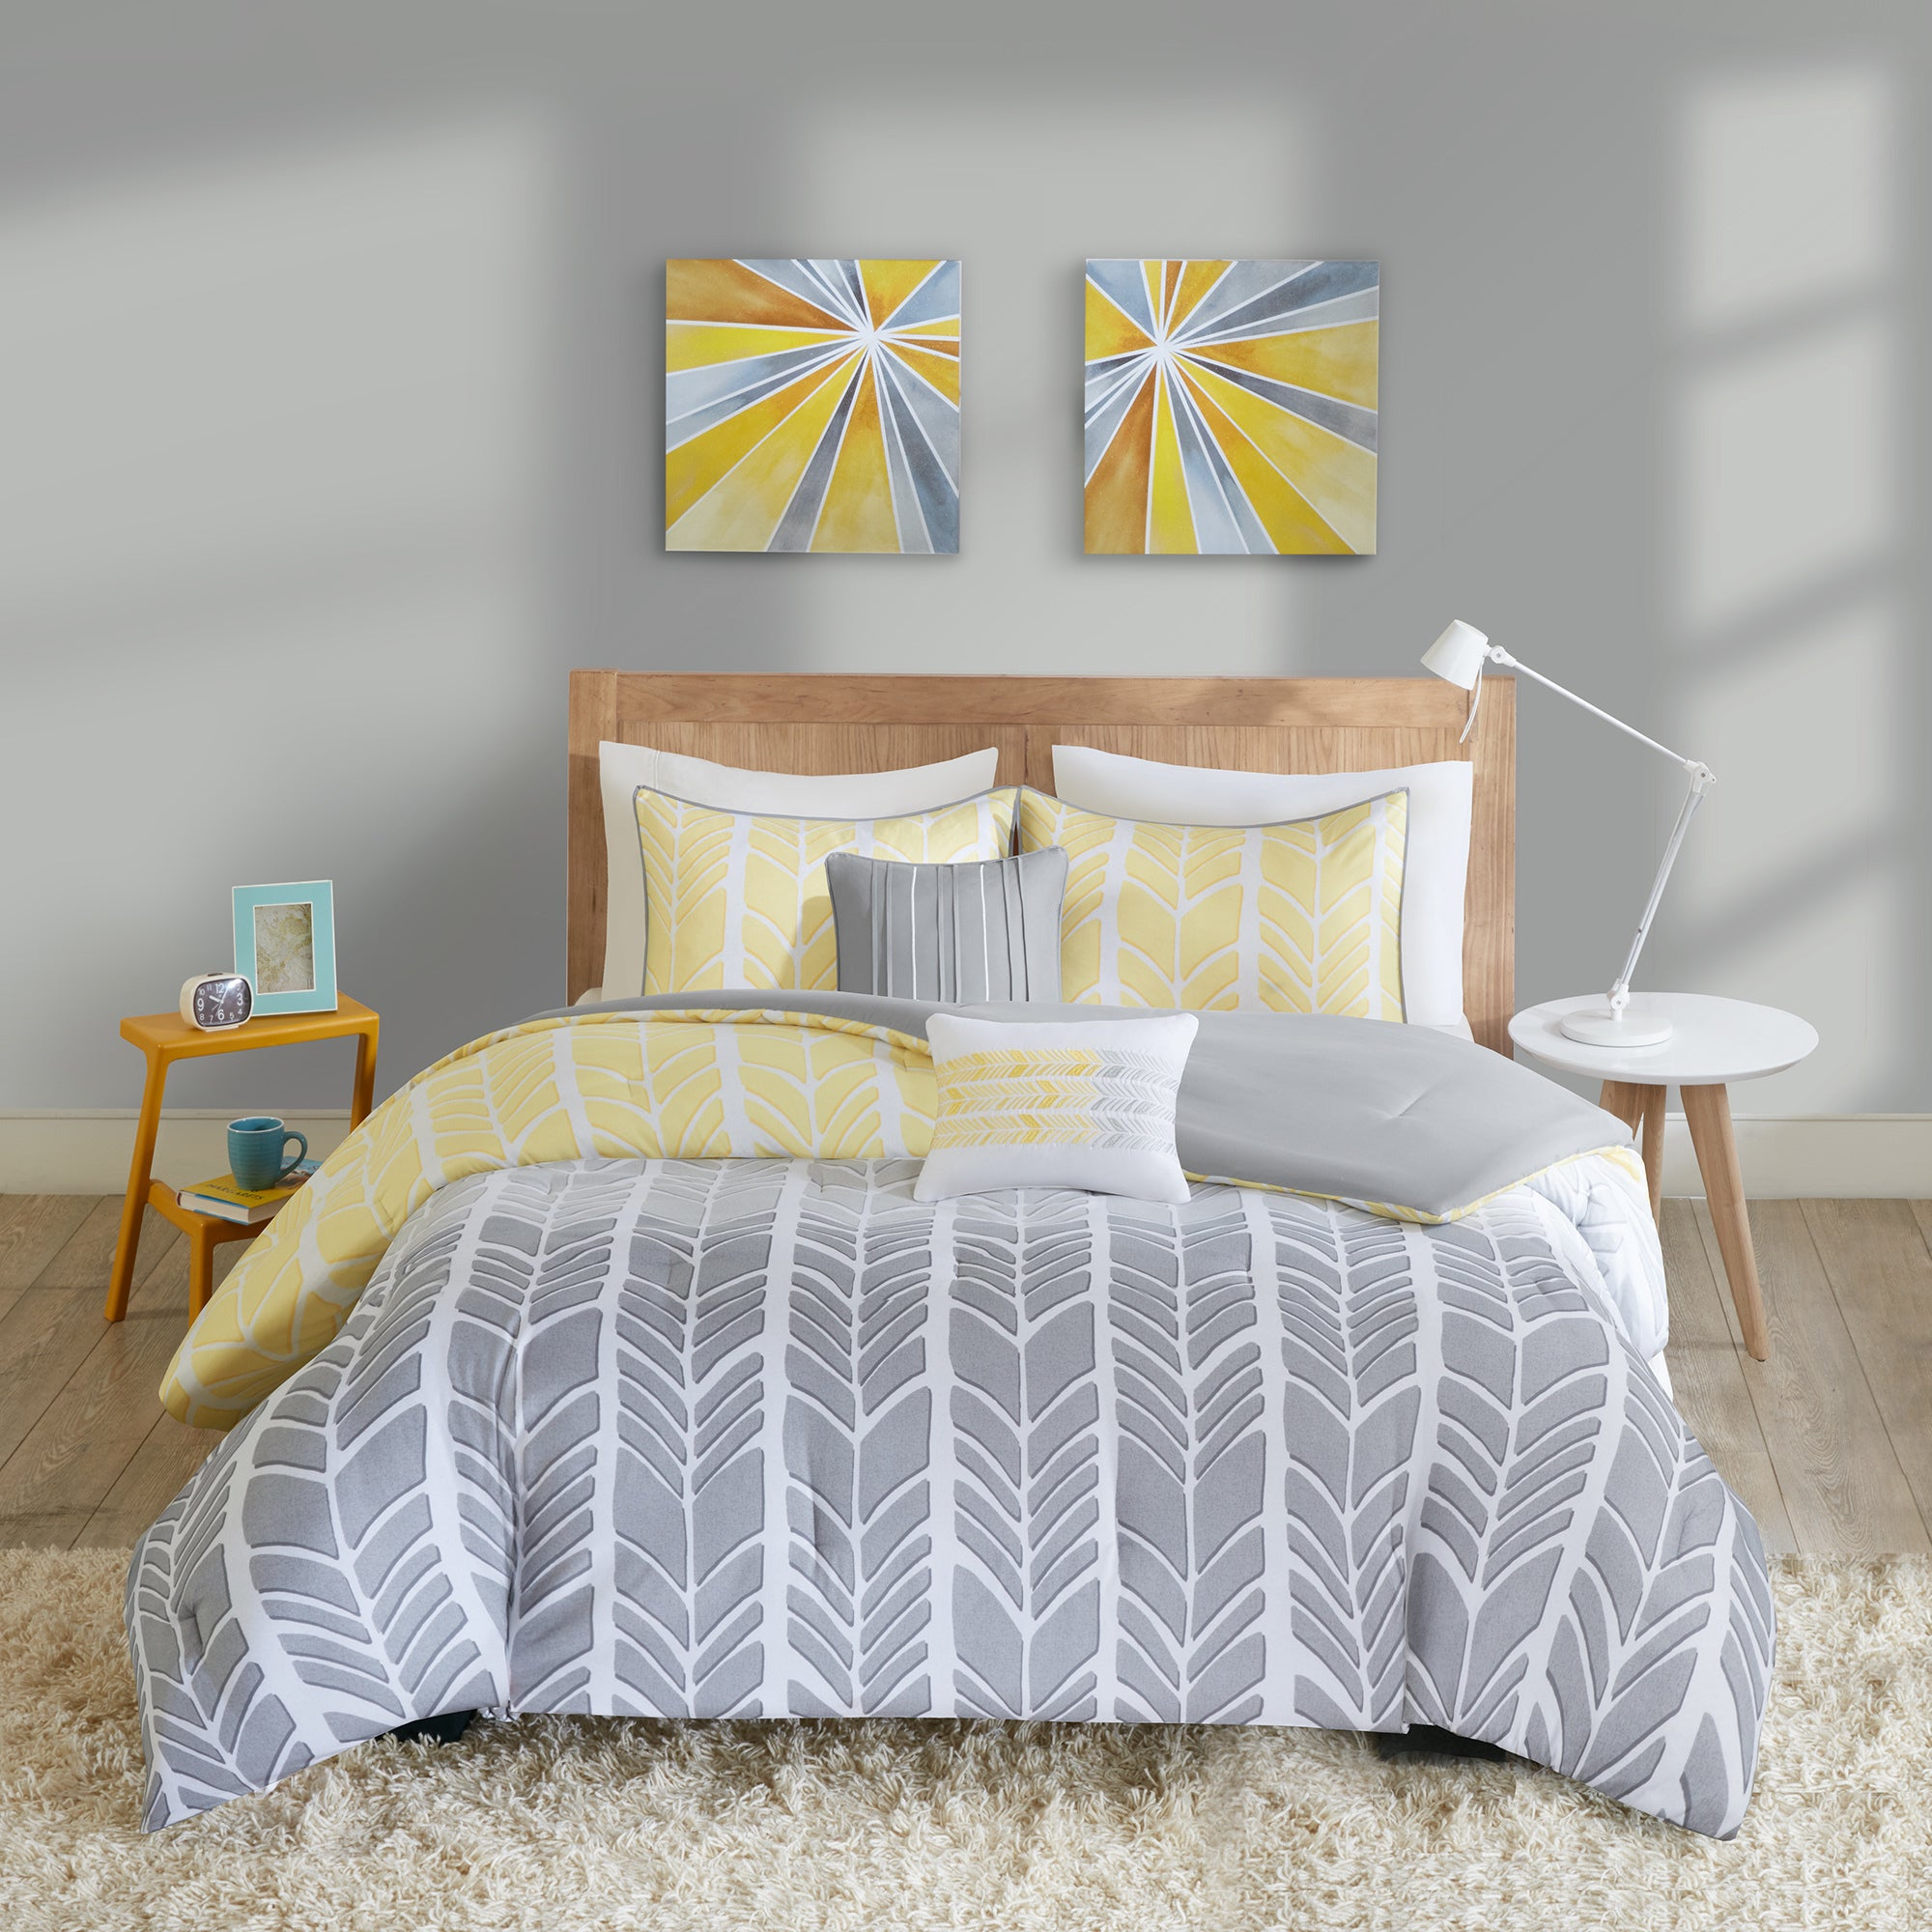 bed size design picture quilt yellow cover sets bedroom comforter bedding white king set and chevron of gray target